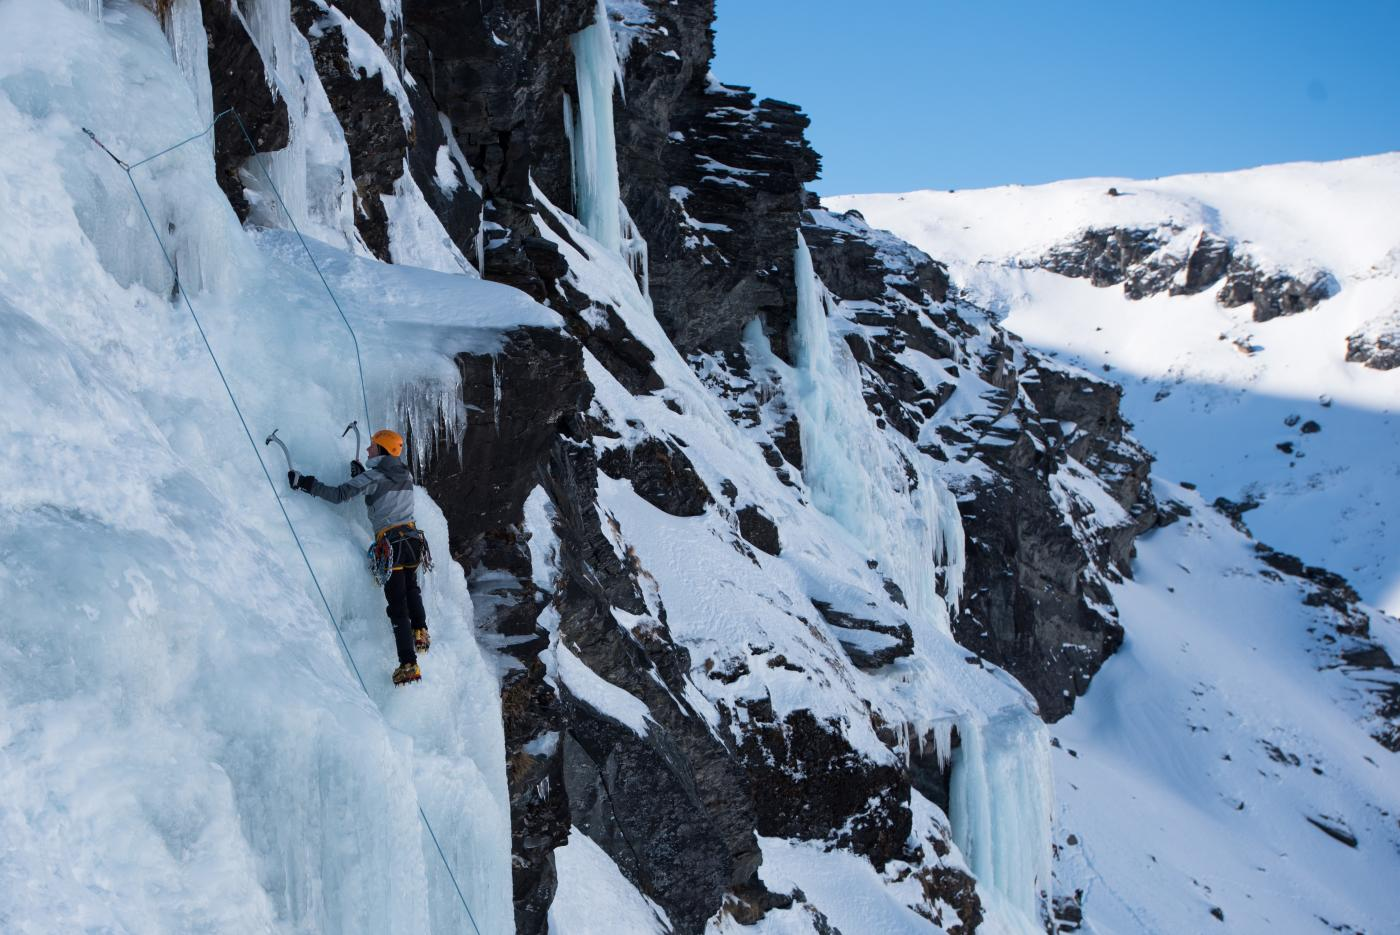 Ice Climbing on Wye Creek in Queenstown with The North Face